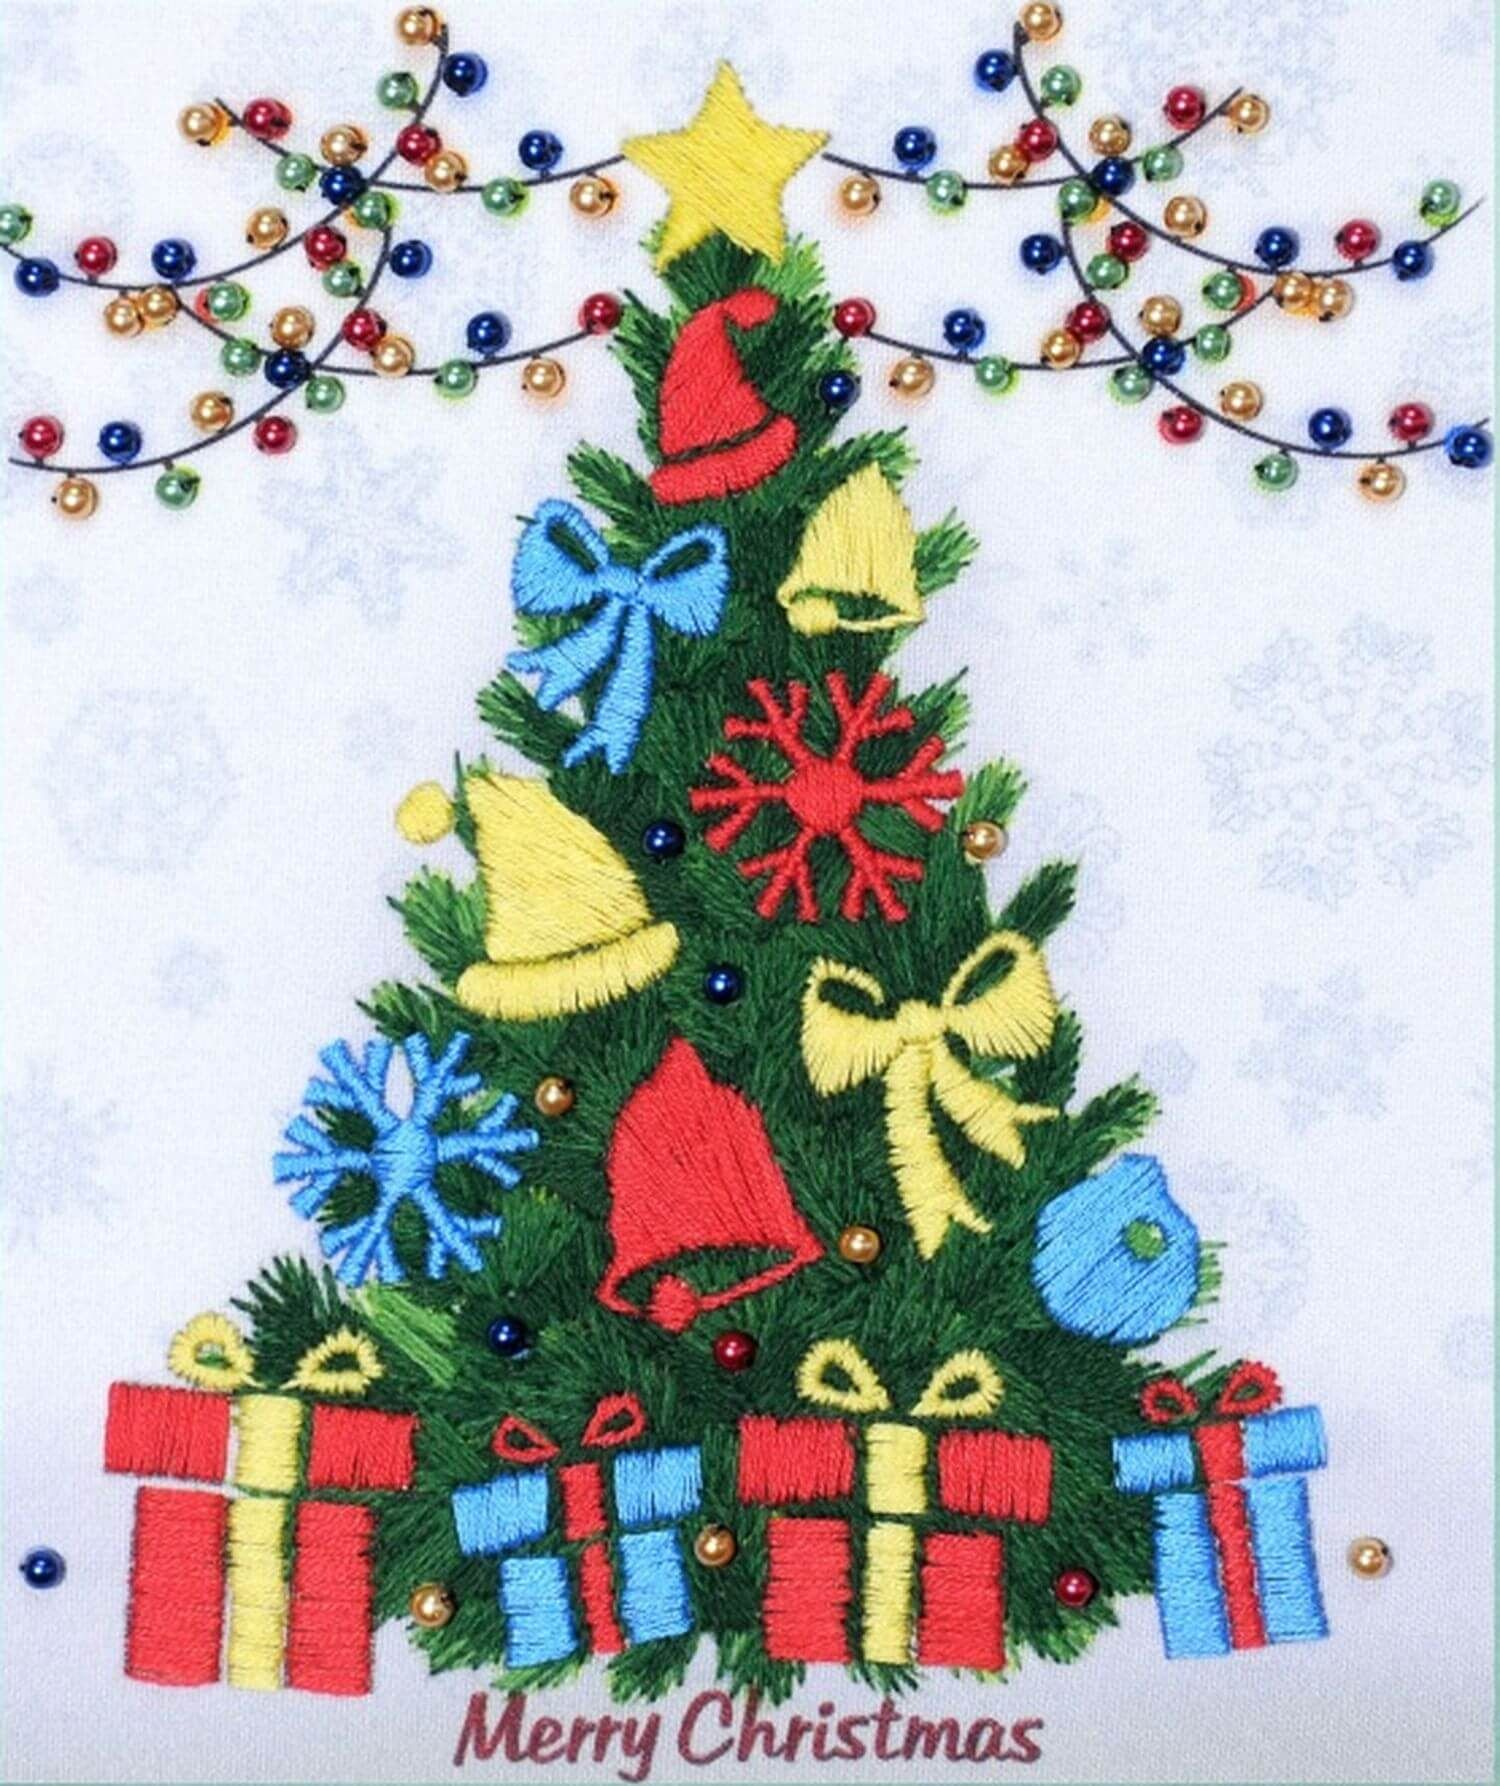 Embroidery Kit Christmas Tree In 2020 Embroidery Kits Cross Stitch Tree Christmas Cross Stitch